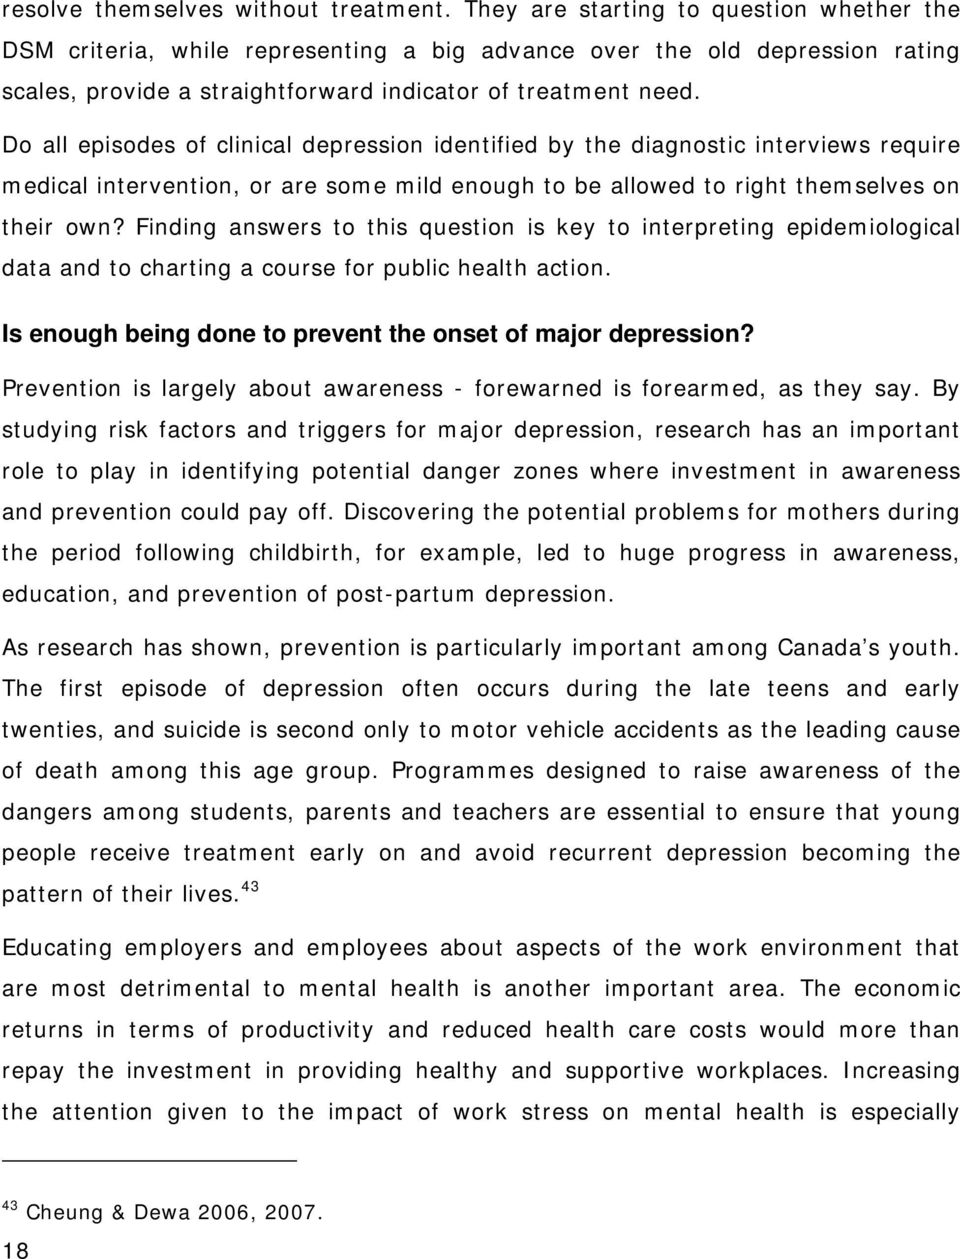 Do all episodes of clinical depression identified by the diagnostic interviews require medical intervention, or are some mild enough to be allowed to right themselves on their own?